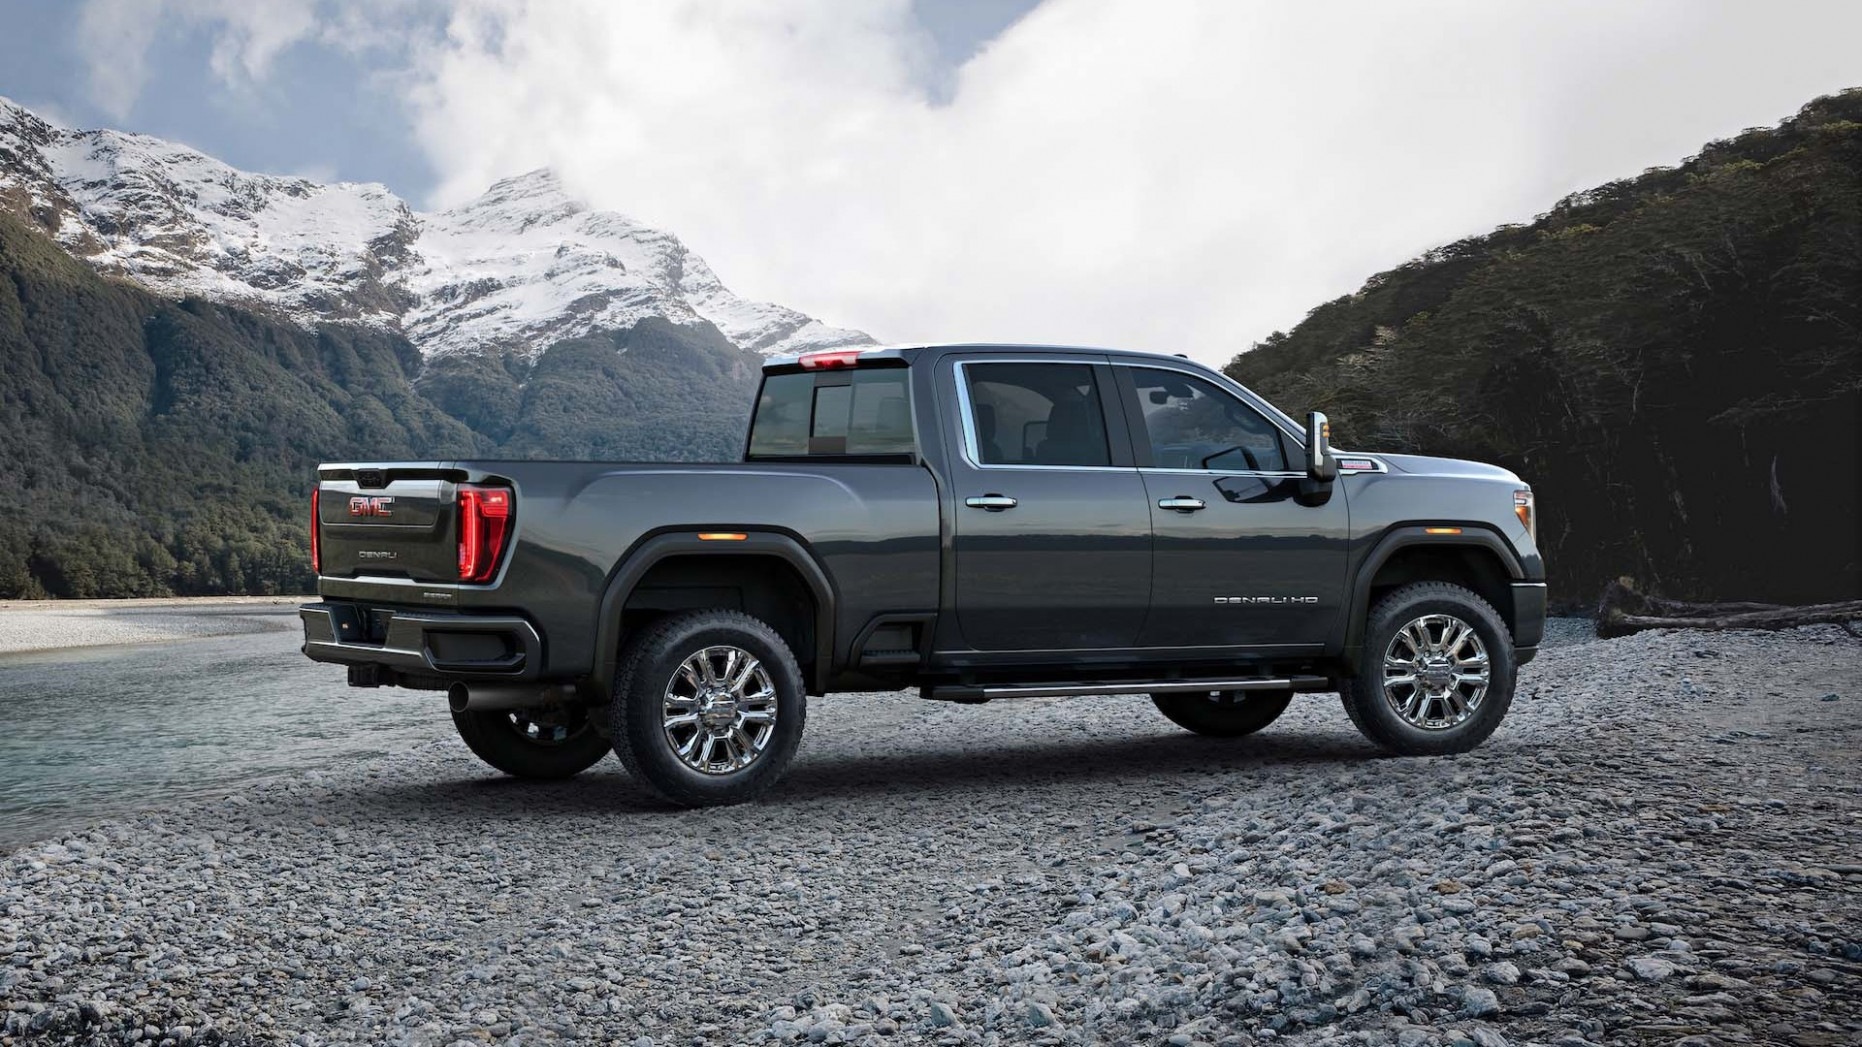 8 GMC Sierra HD hauls in lower starting price than previous model